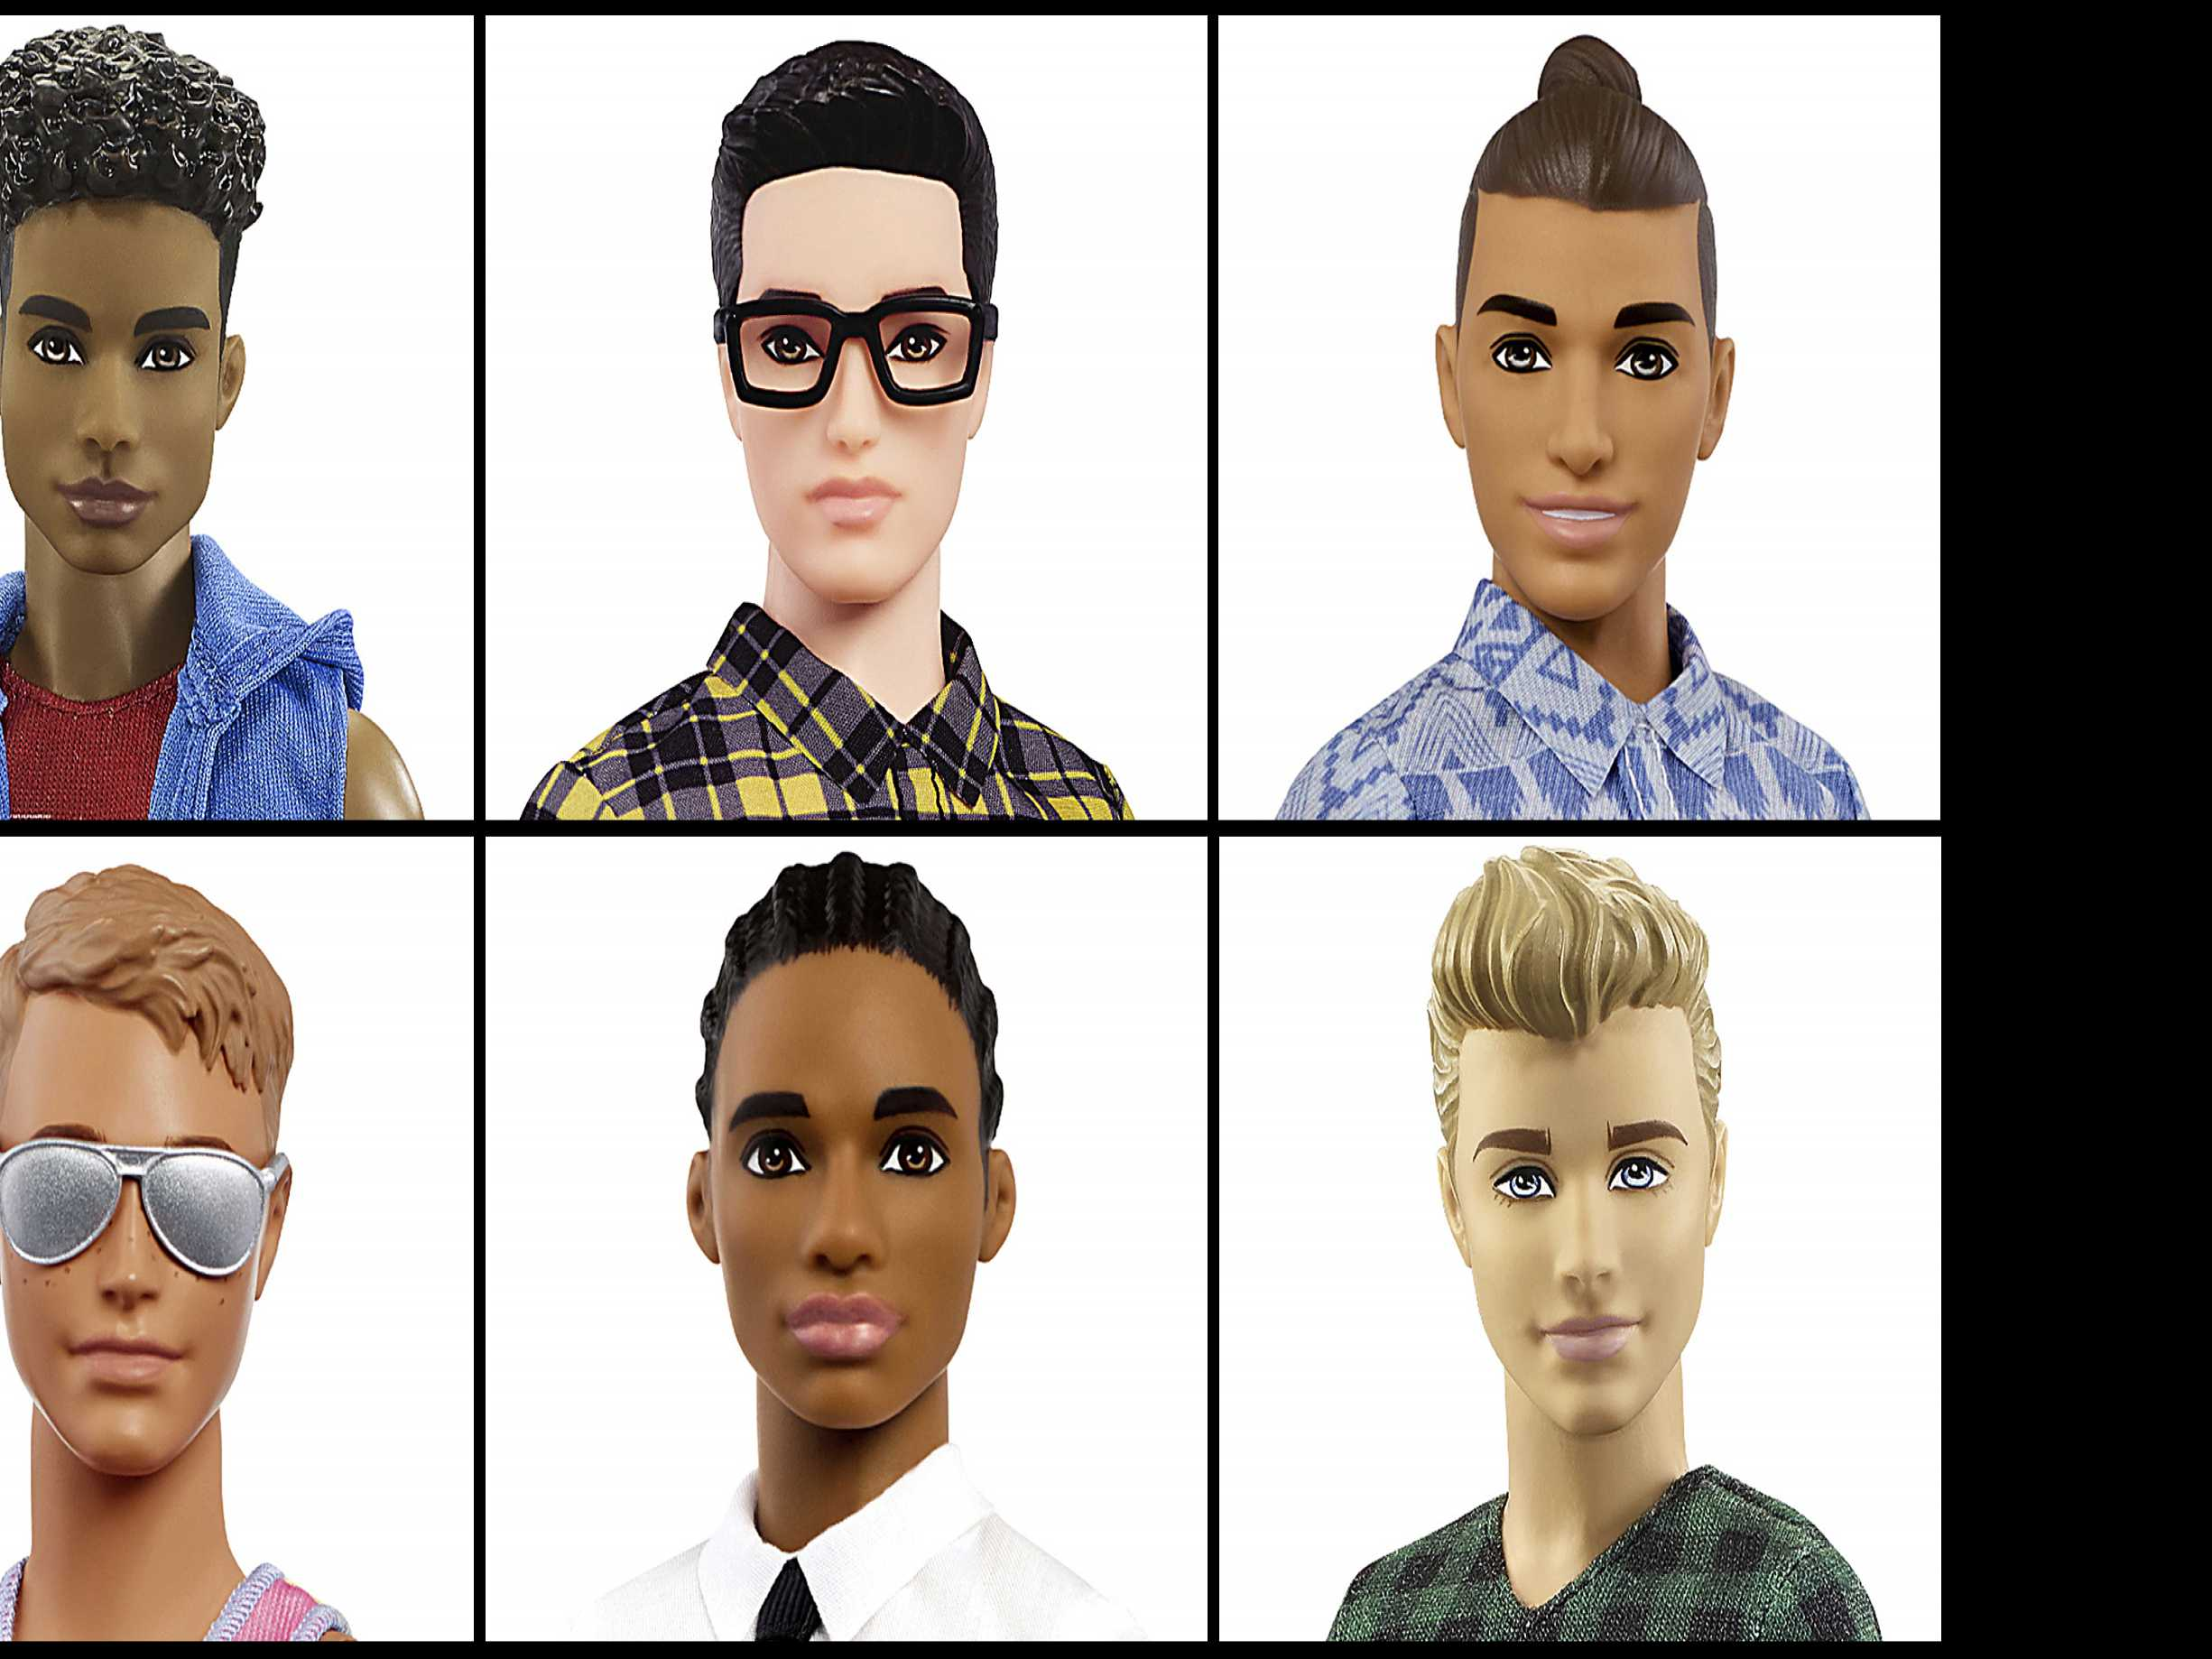 Barbie's Companion Ken Gets New Looks: Man Bun, Beefy Bod